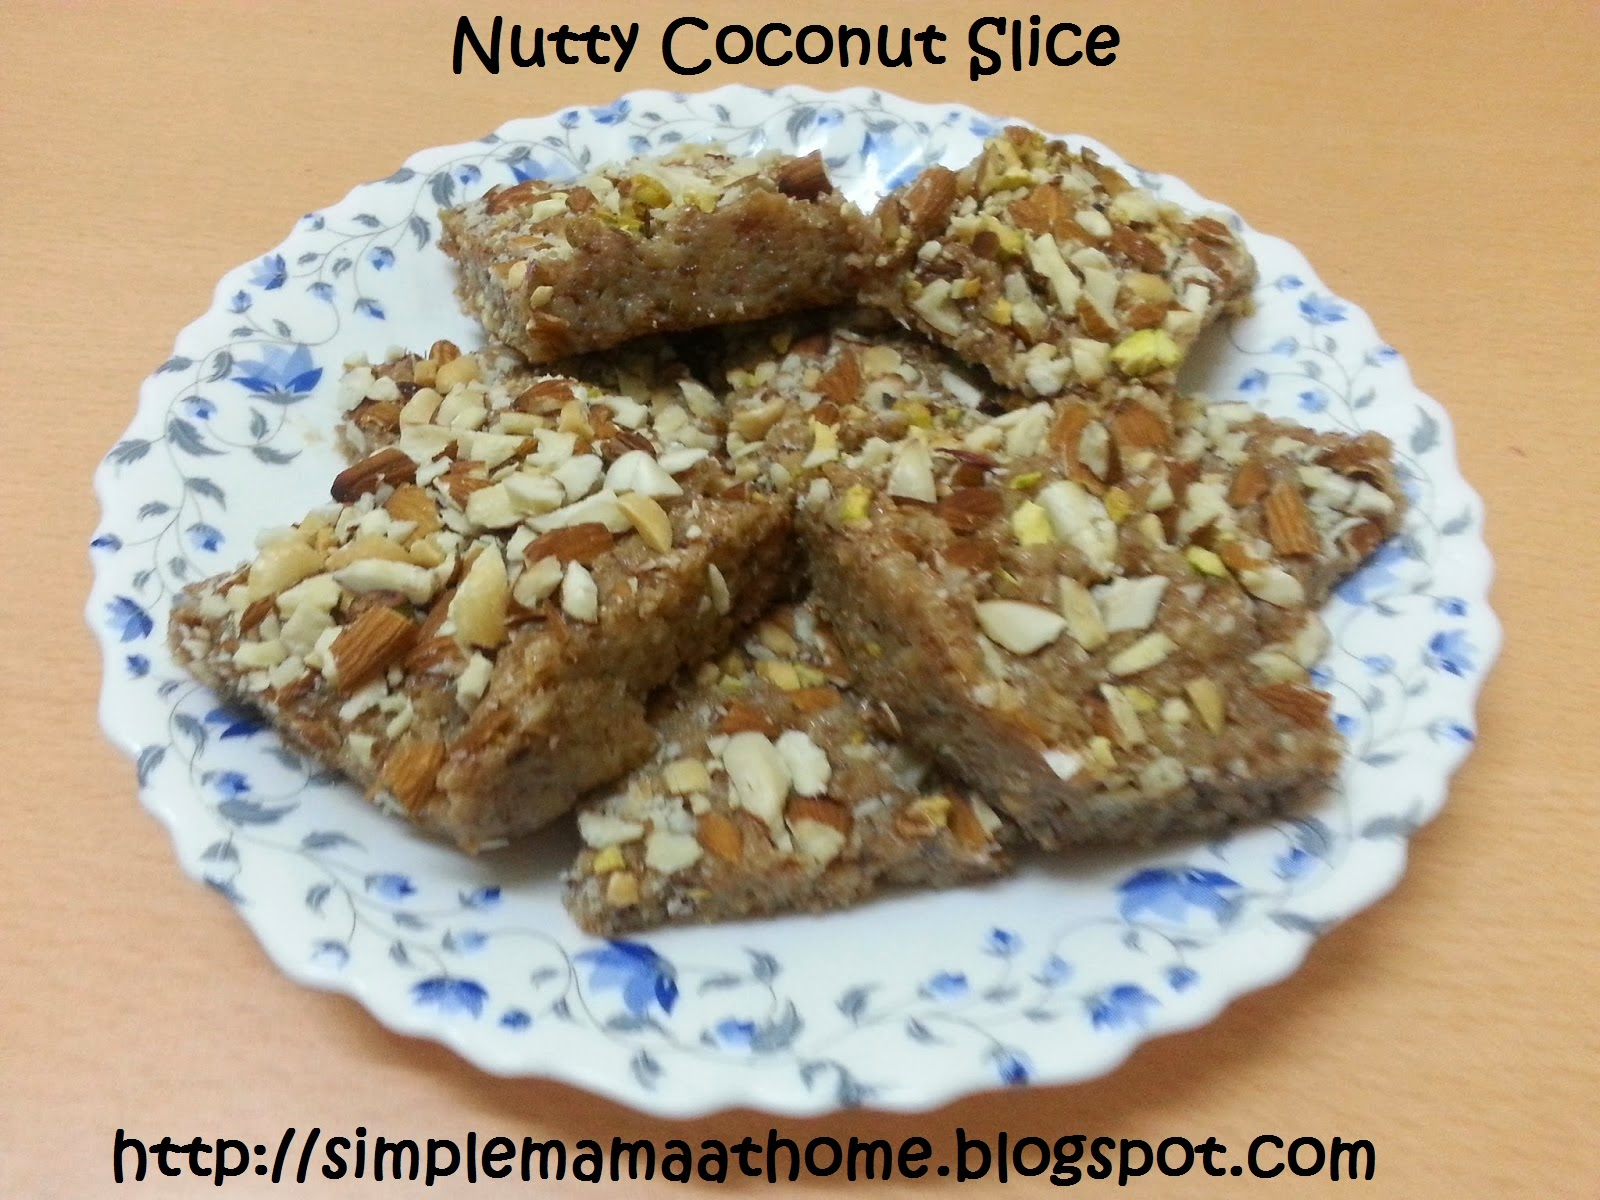 Nutty Coconut Slice